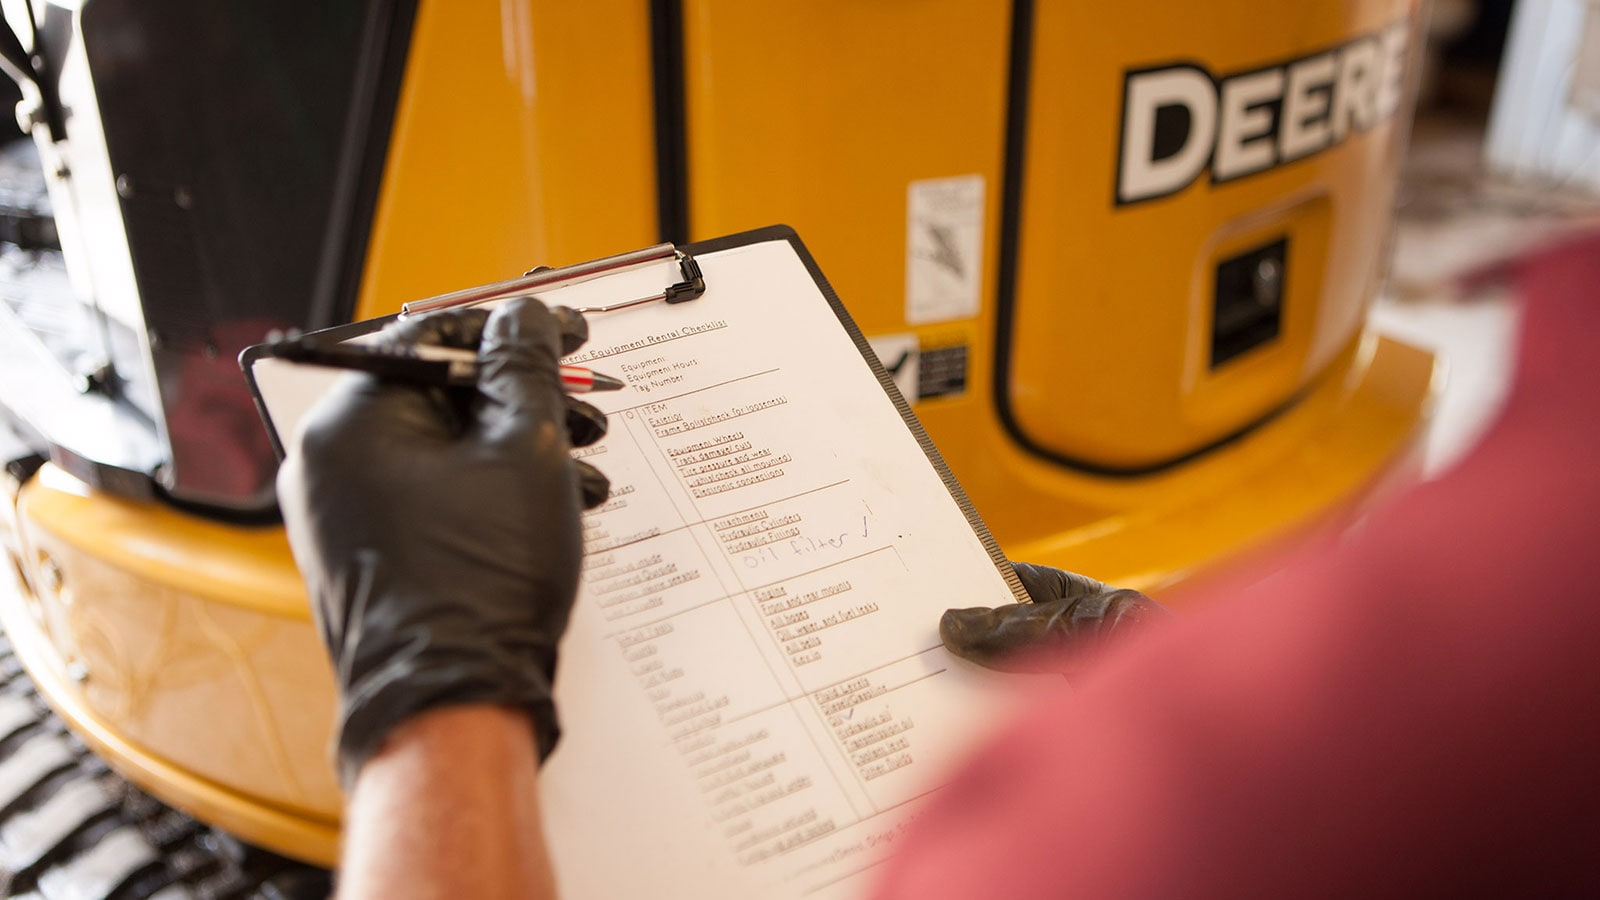 A technician reviews a maintenance checklist